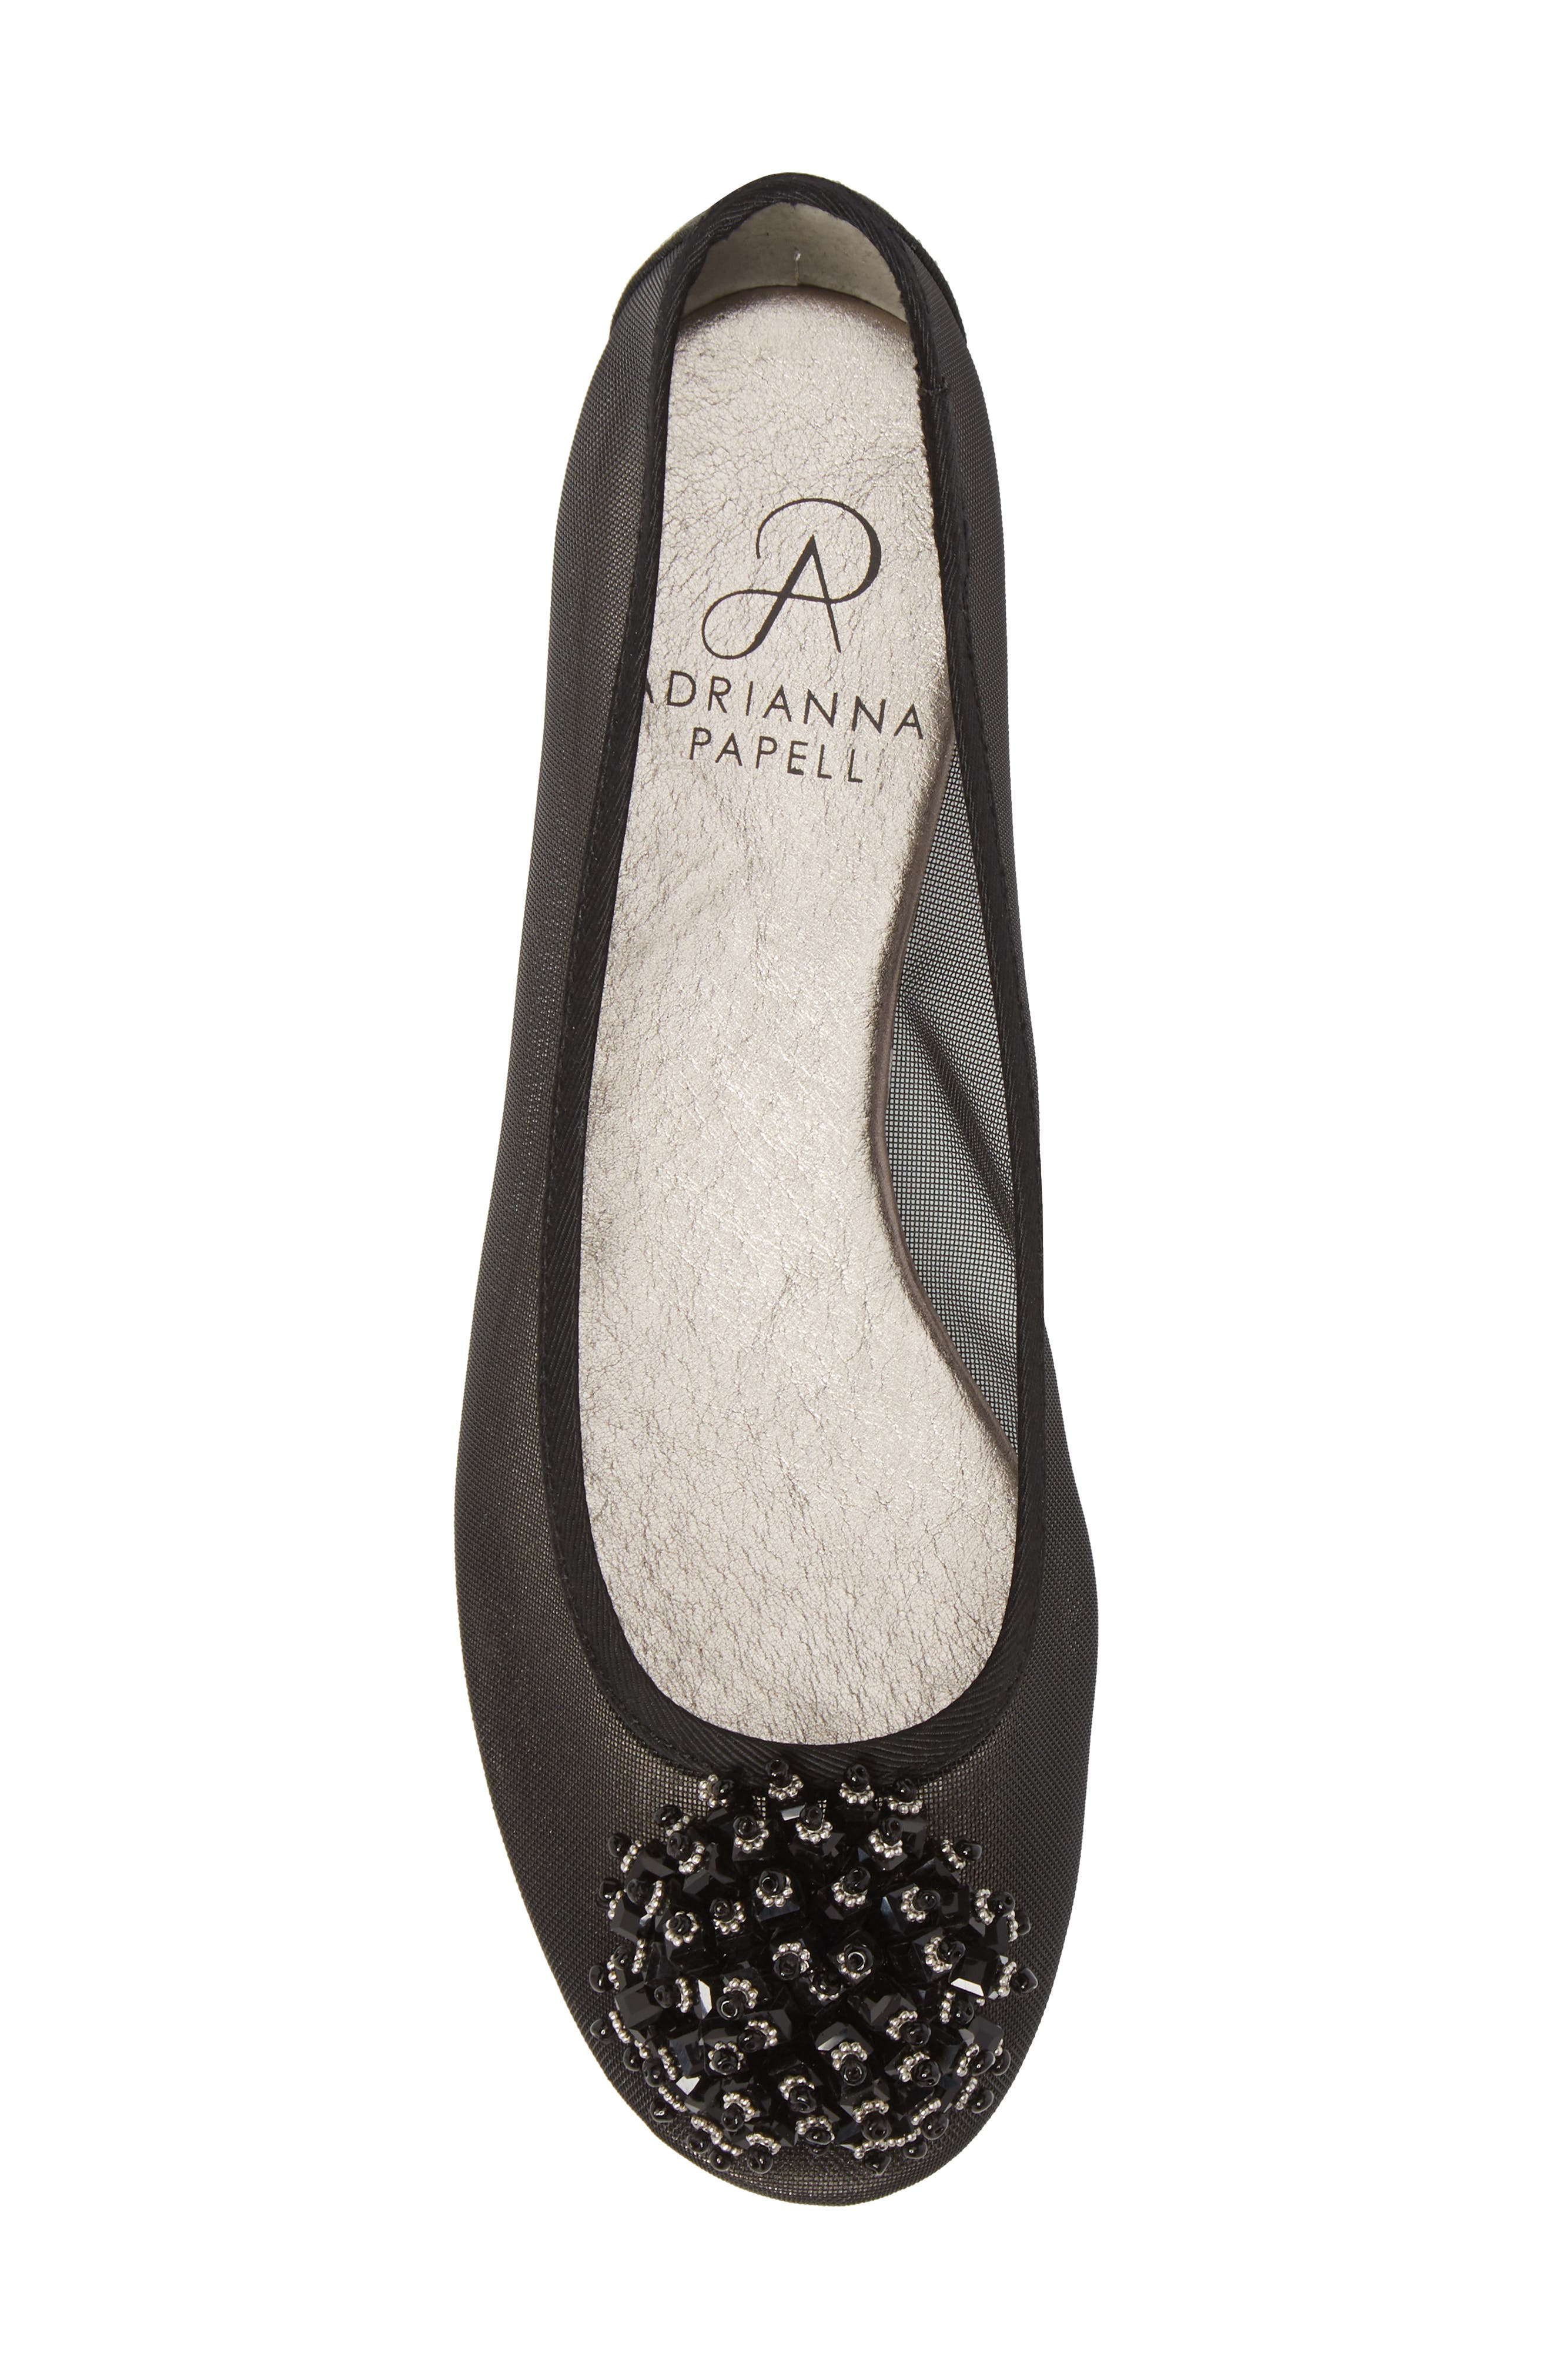 ADRIANNA PAPELL,                             Stevie Embellished Flat,                             Alternate thumbnail 5, color,                             001